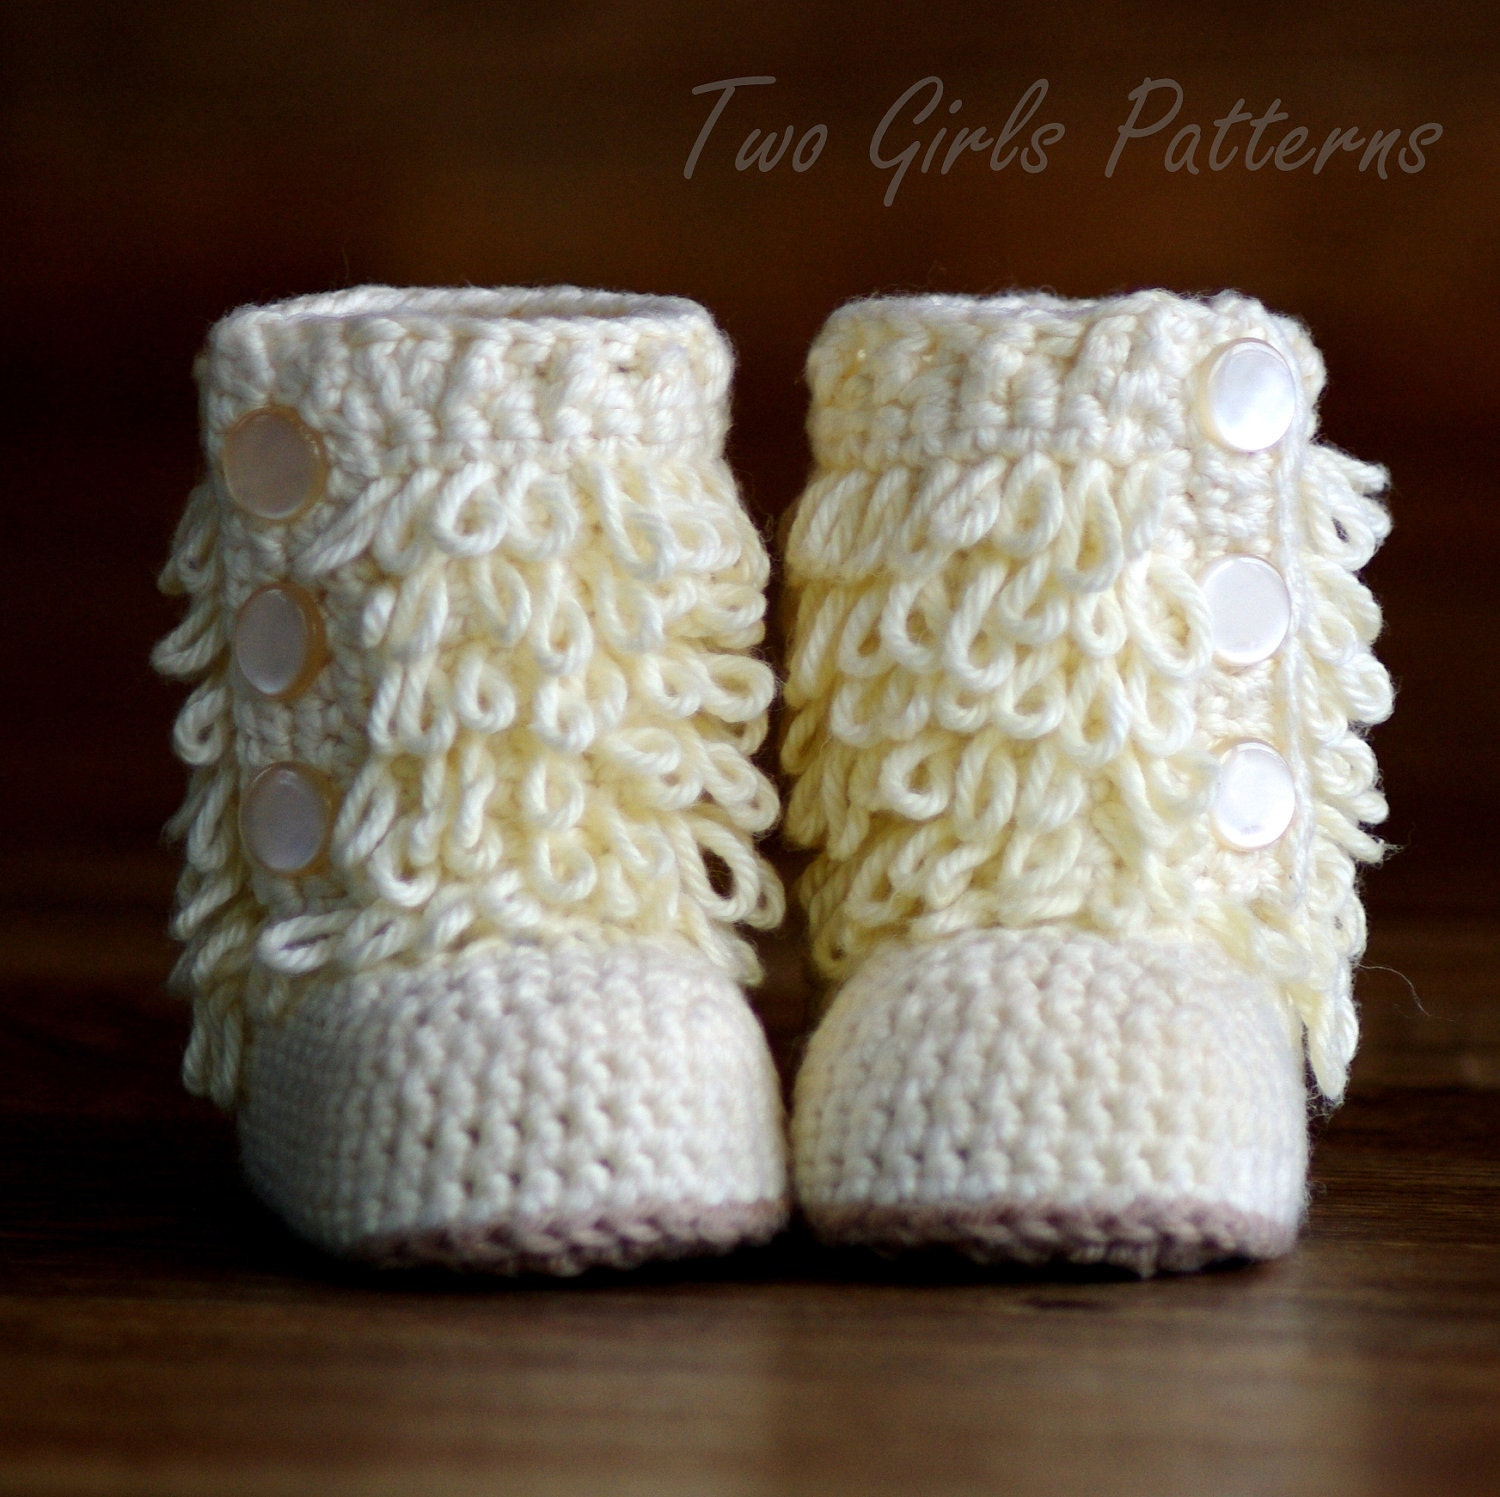 Crochet Patterns To Purchase : Baby Crochet Boots Pattern Furrylicious by TwoGirlsPatterns